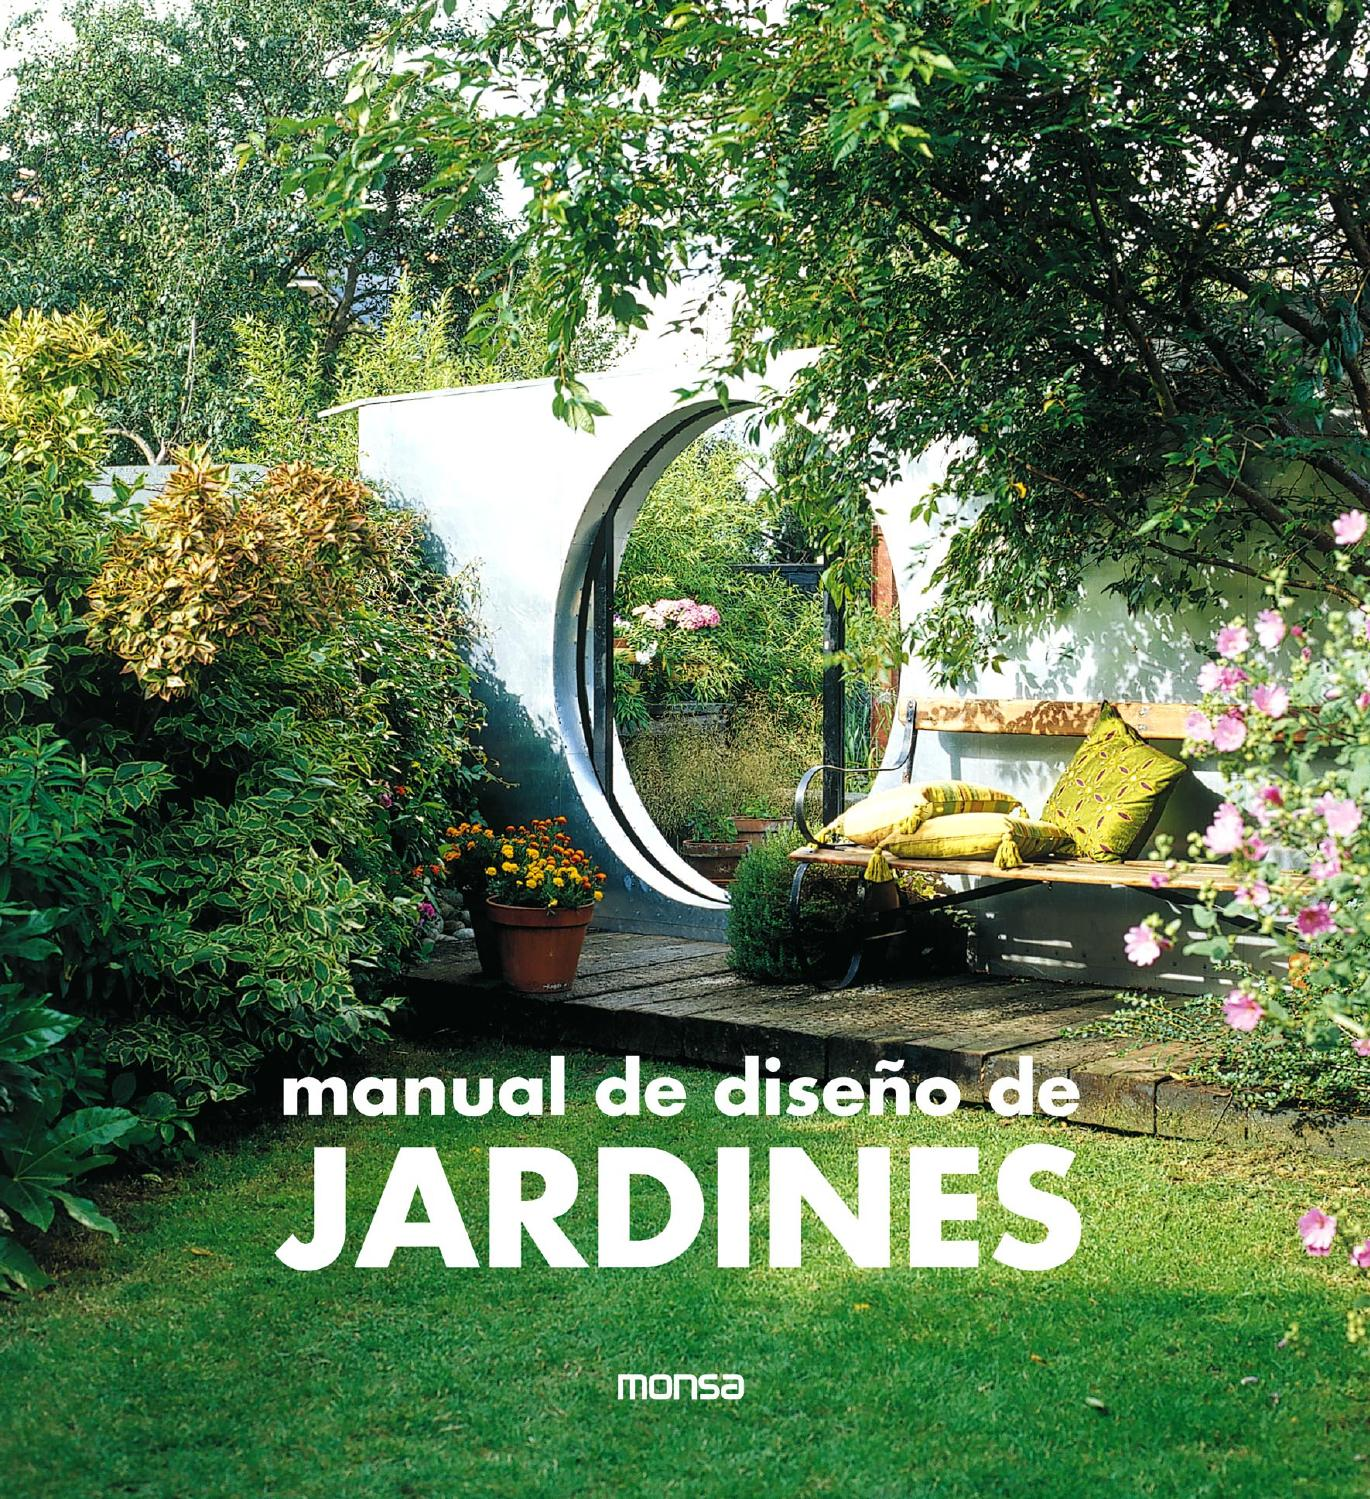 Manual de dise o de jardines by monsa publications issuu for Jardines disenos